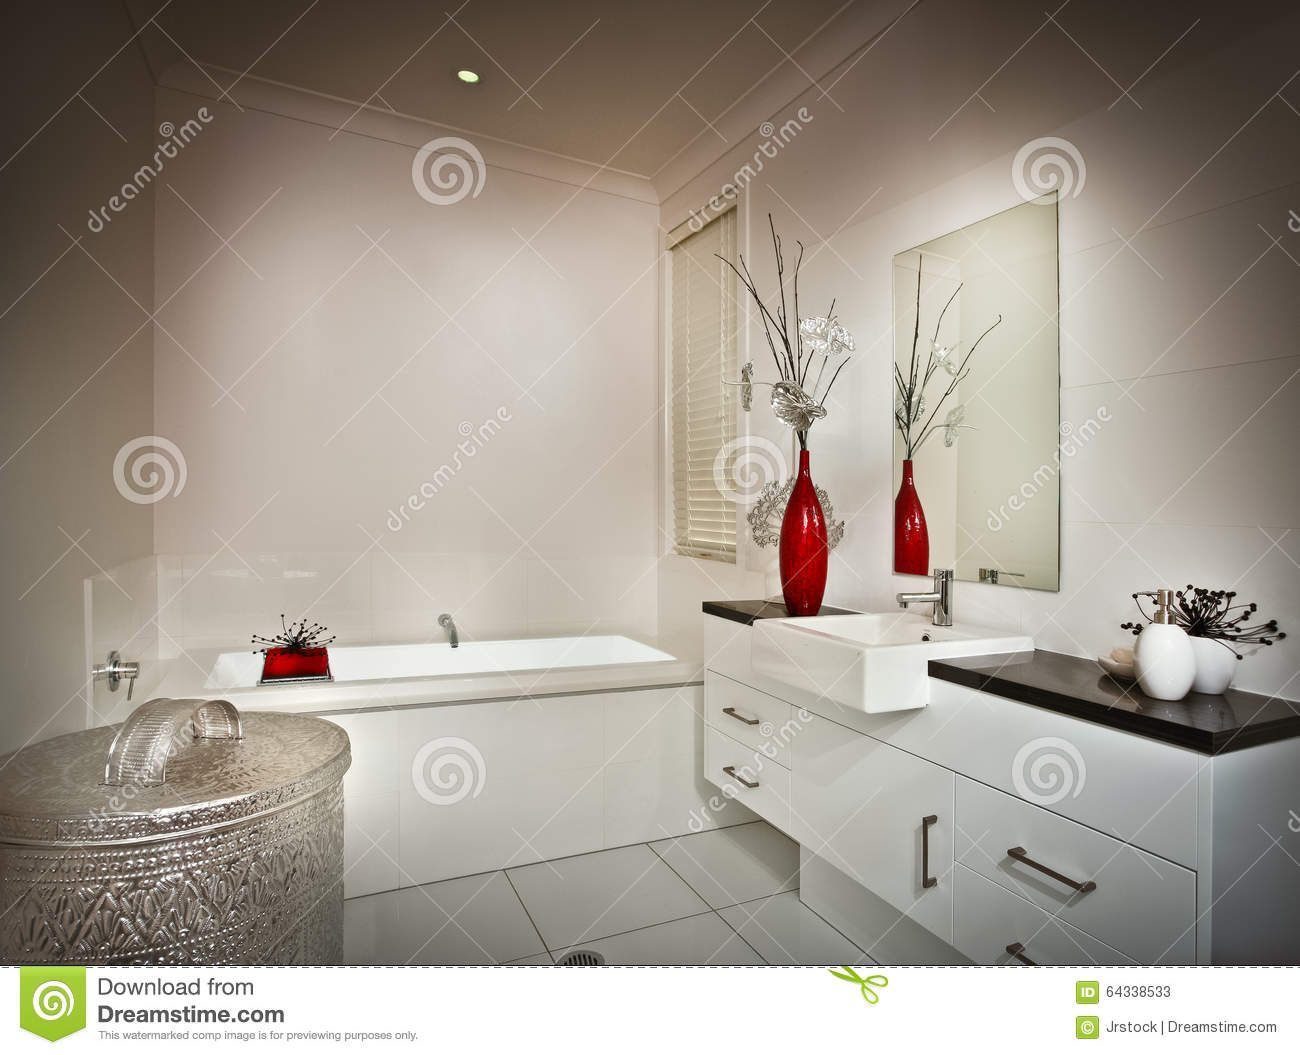 Picture Of A Beautiful White Washroom Stock Image - Image of basin ...